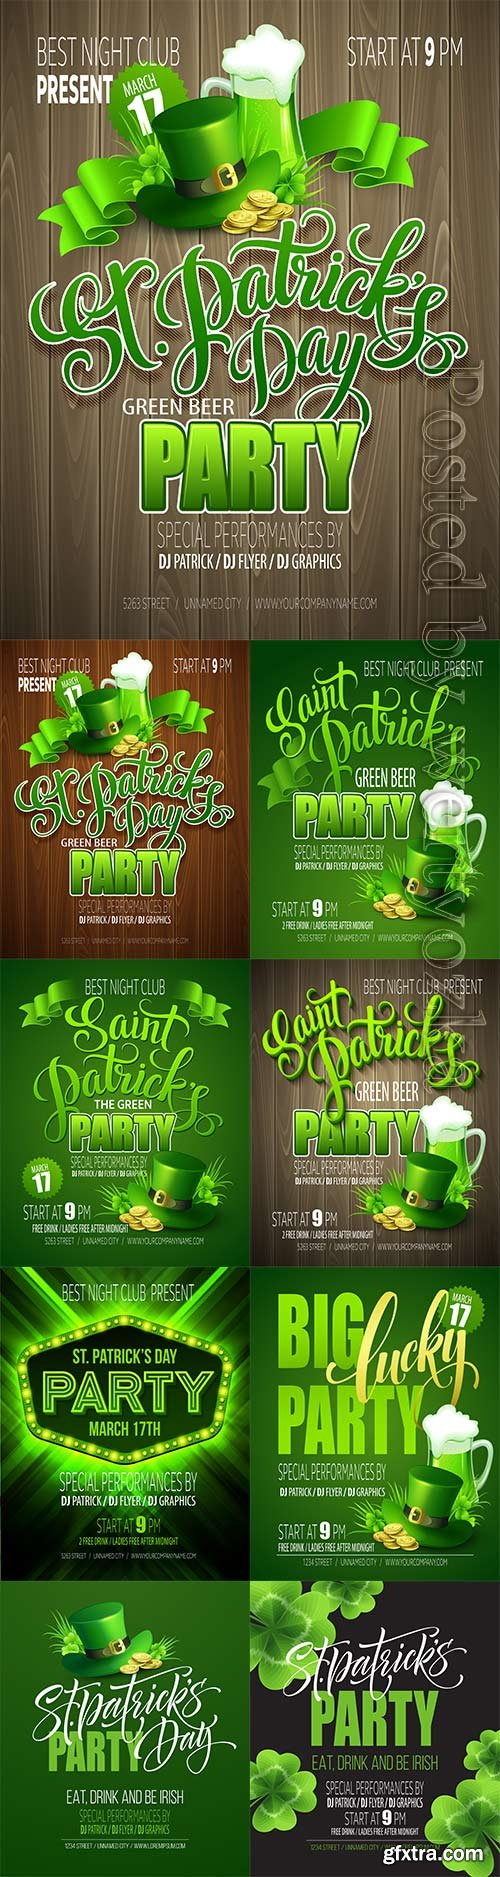 Patricks day party holiday poster vector design